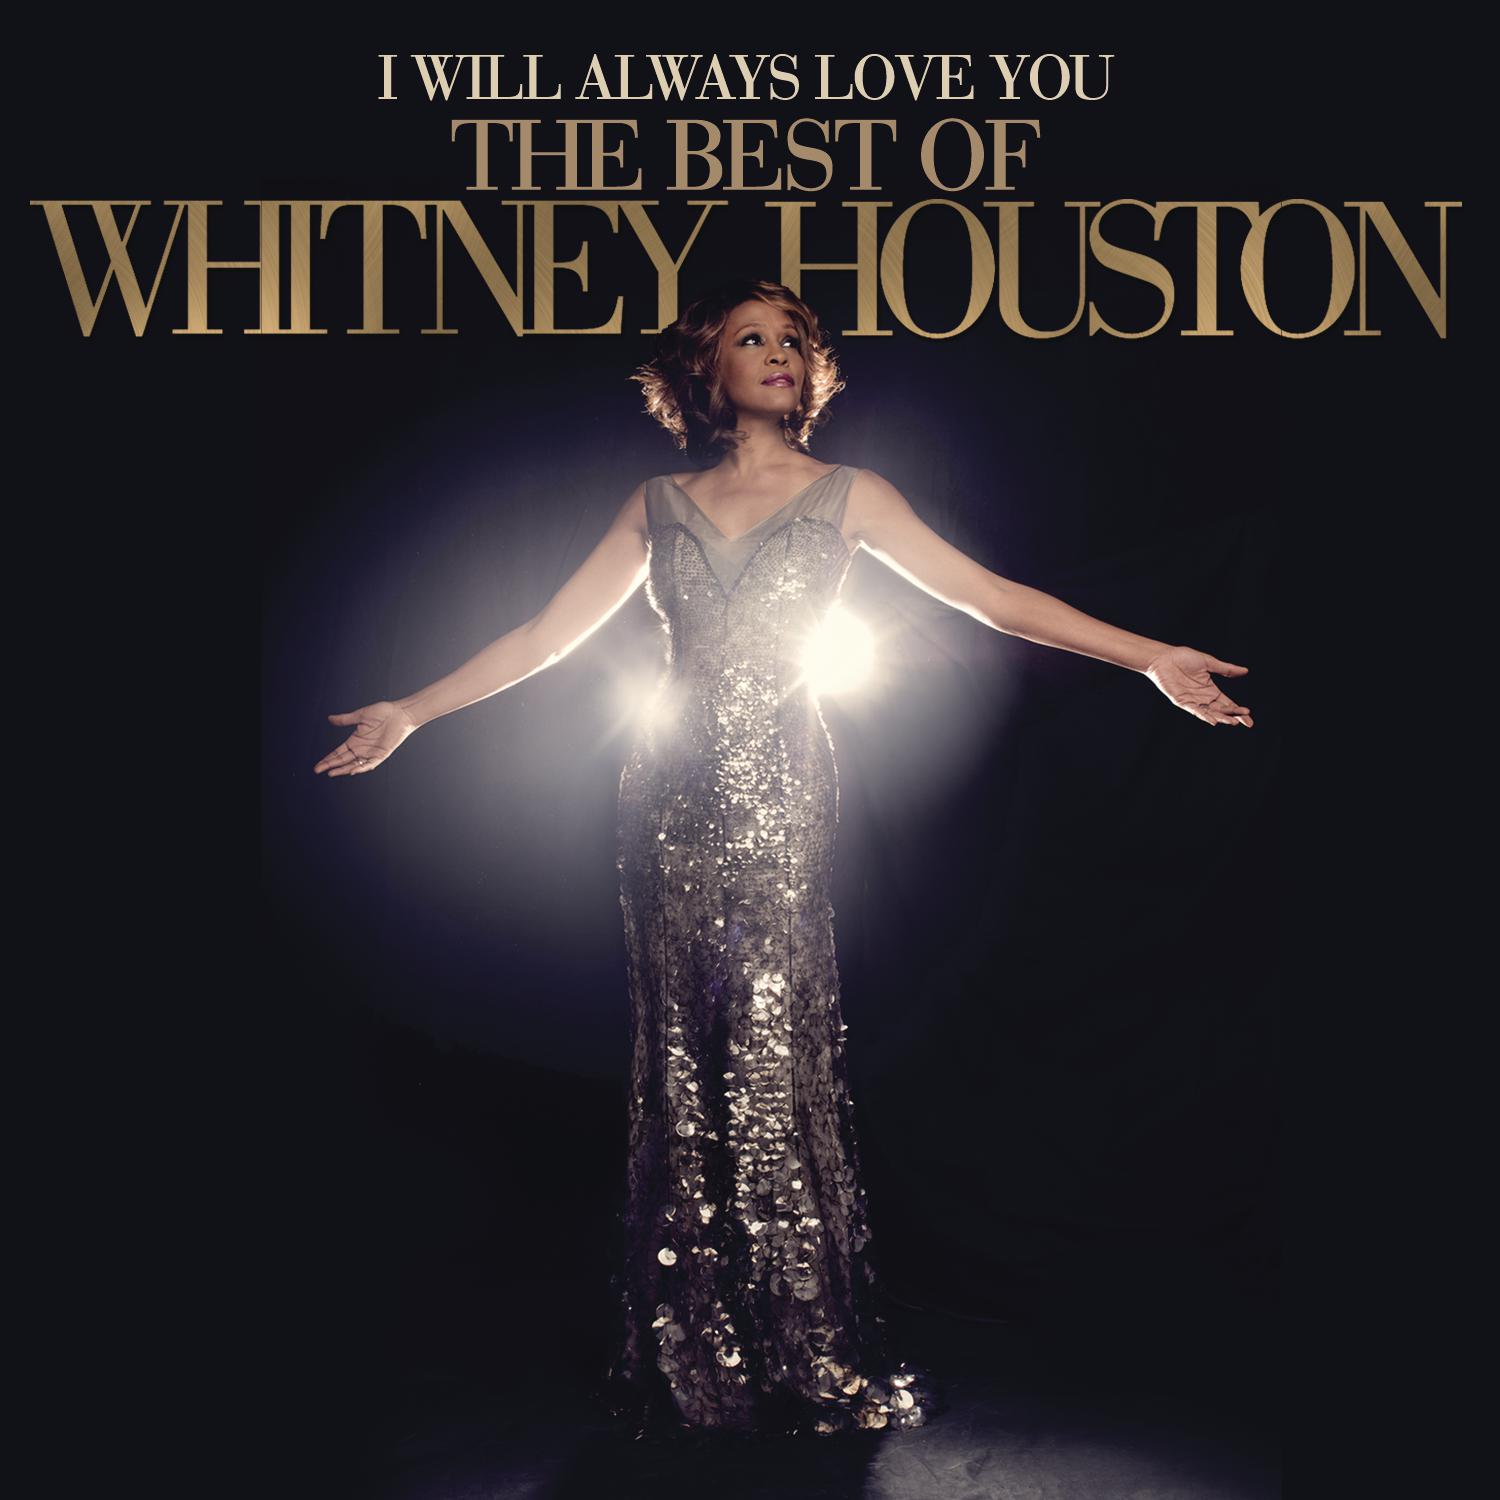 http://3.bp.blogspot.com/-hC1fKVvgc-M/UKFXSVqKD6I/AAAAAAAAFns/vmkJZTYZXjA/s1600/Whitney+Houston++-+I+Will+Always+Love+You+The+Best+Of+Whitney+Houston+(2012).jpg